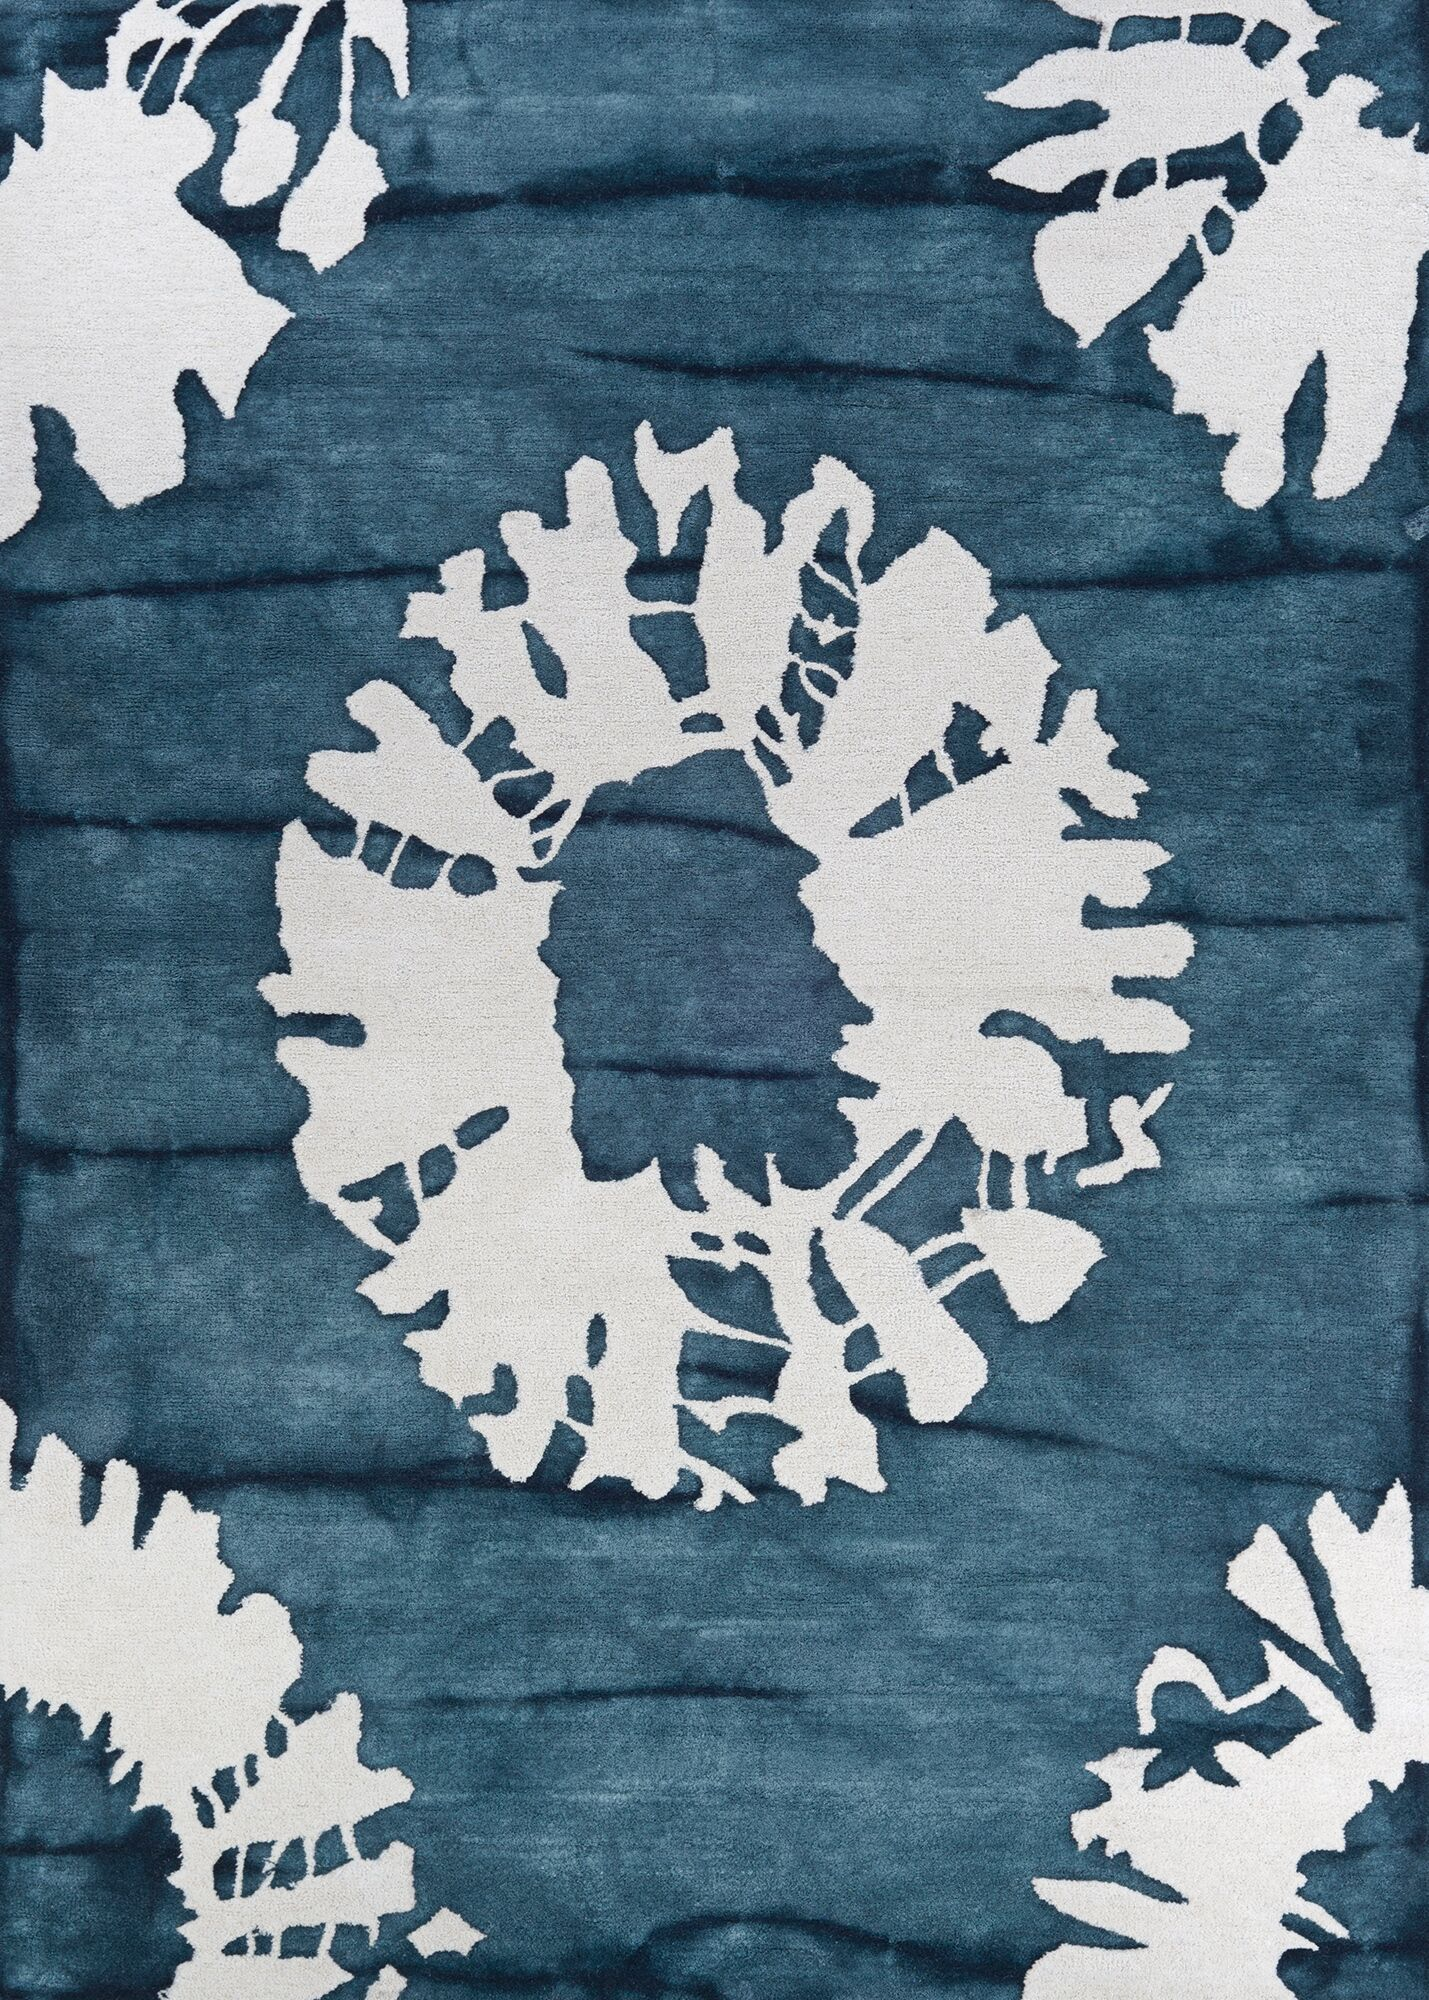 Sasso Hand-Tufted Wool Blue Area Rug Rug Size: Rectangle 6' x 9'